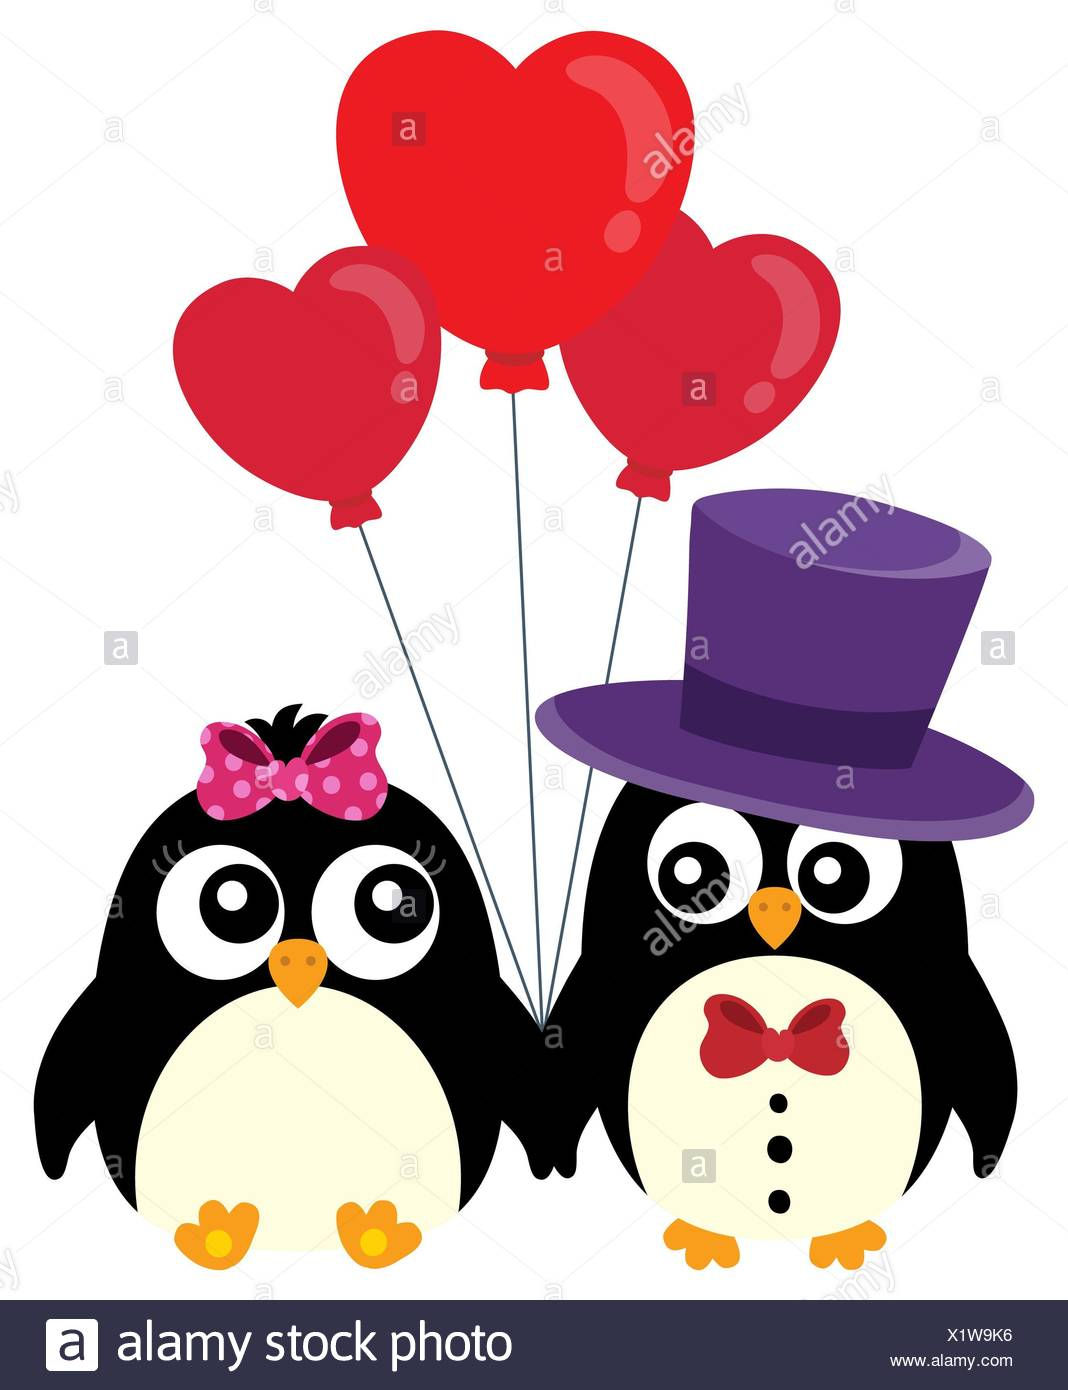 Valentine penguins theme image 1 - Stock Image